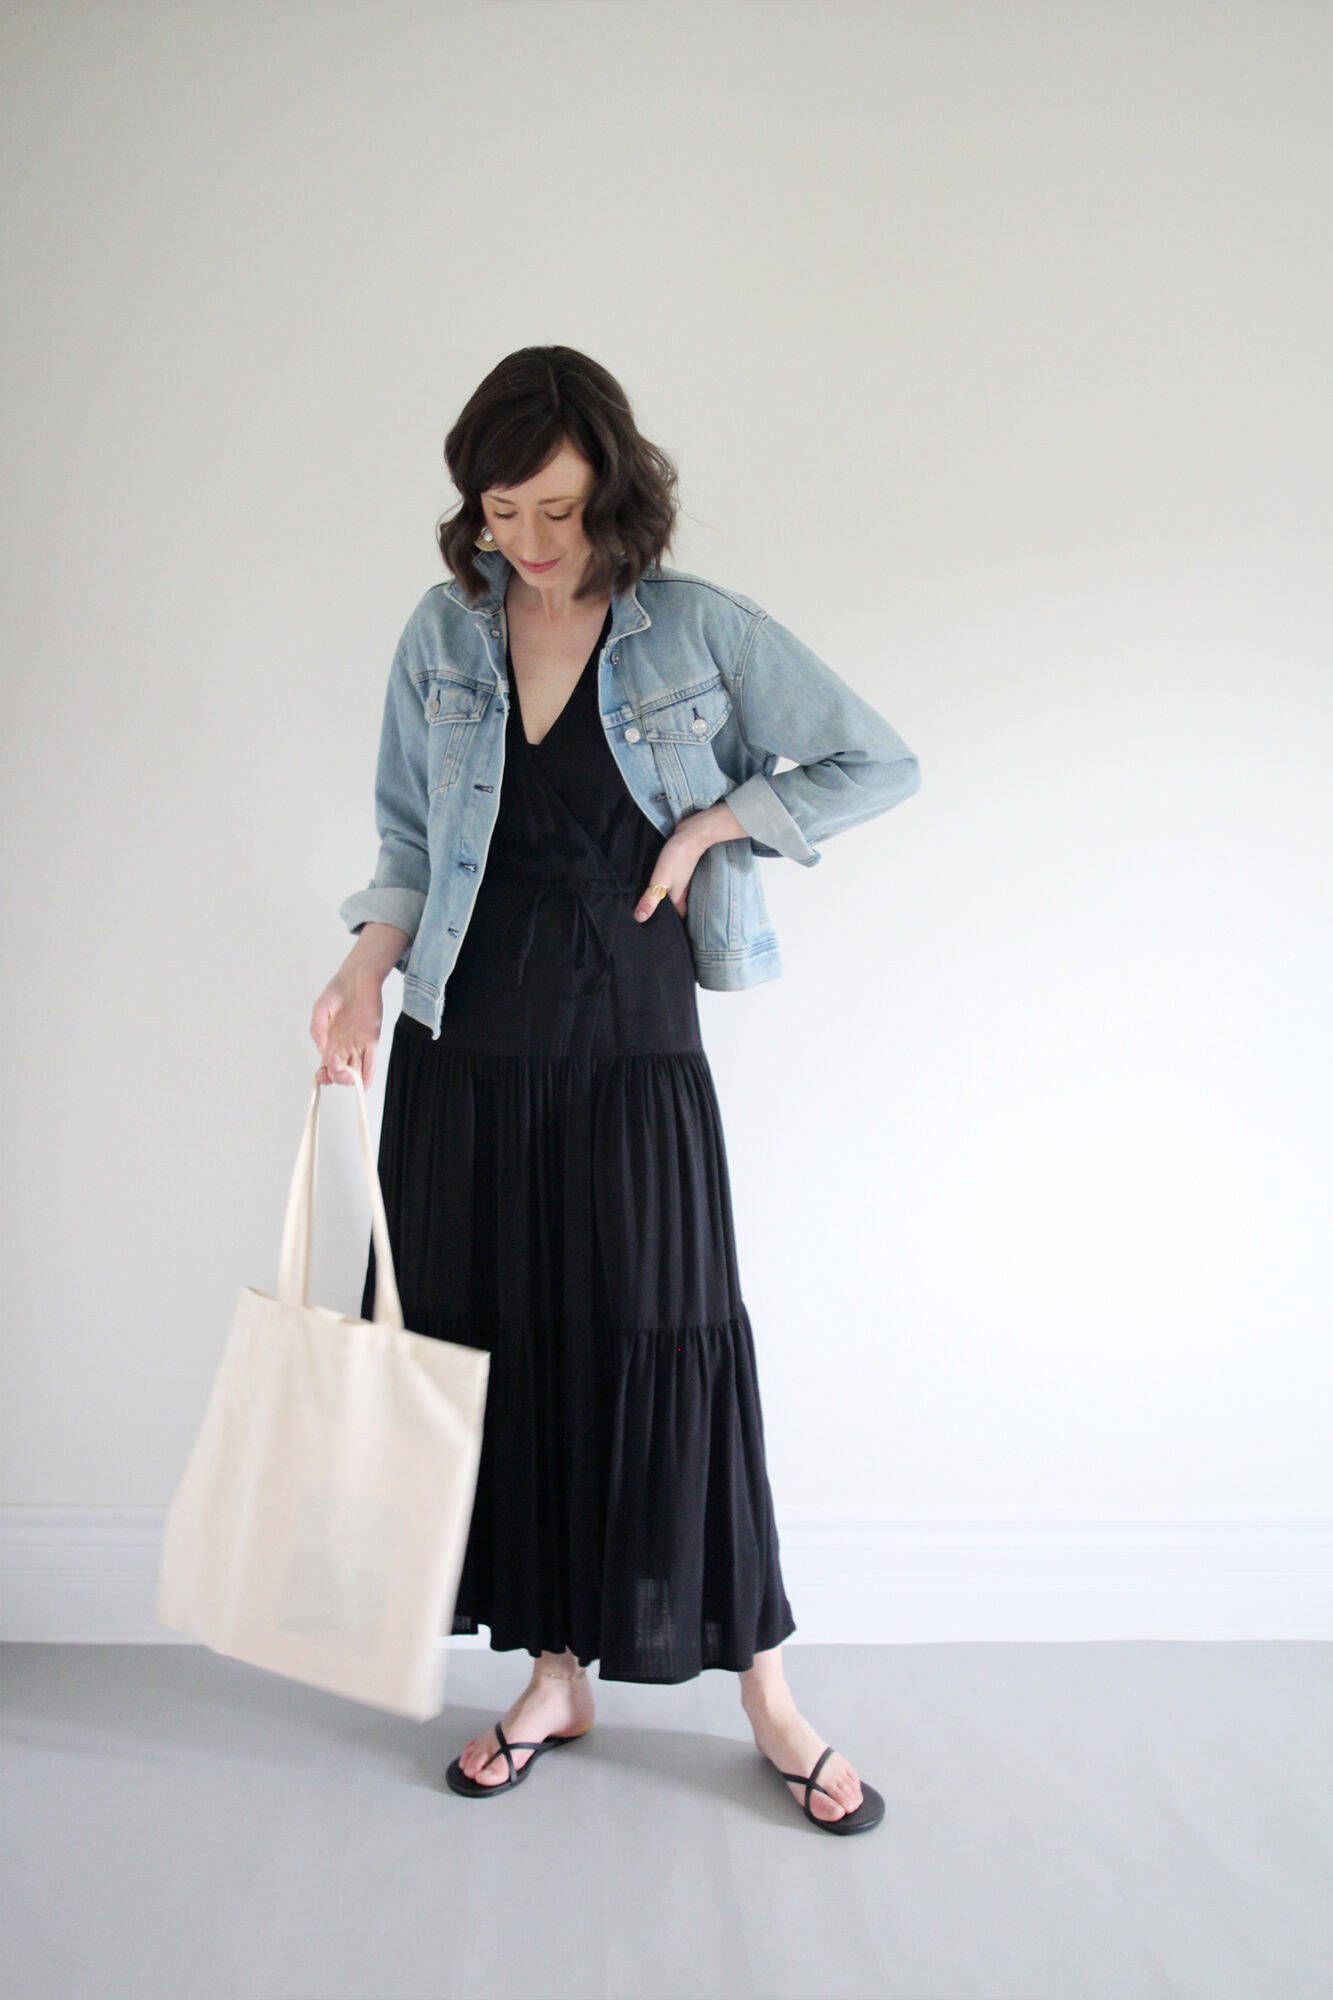 Style Bee - Long Dress for a Long Weekend